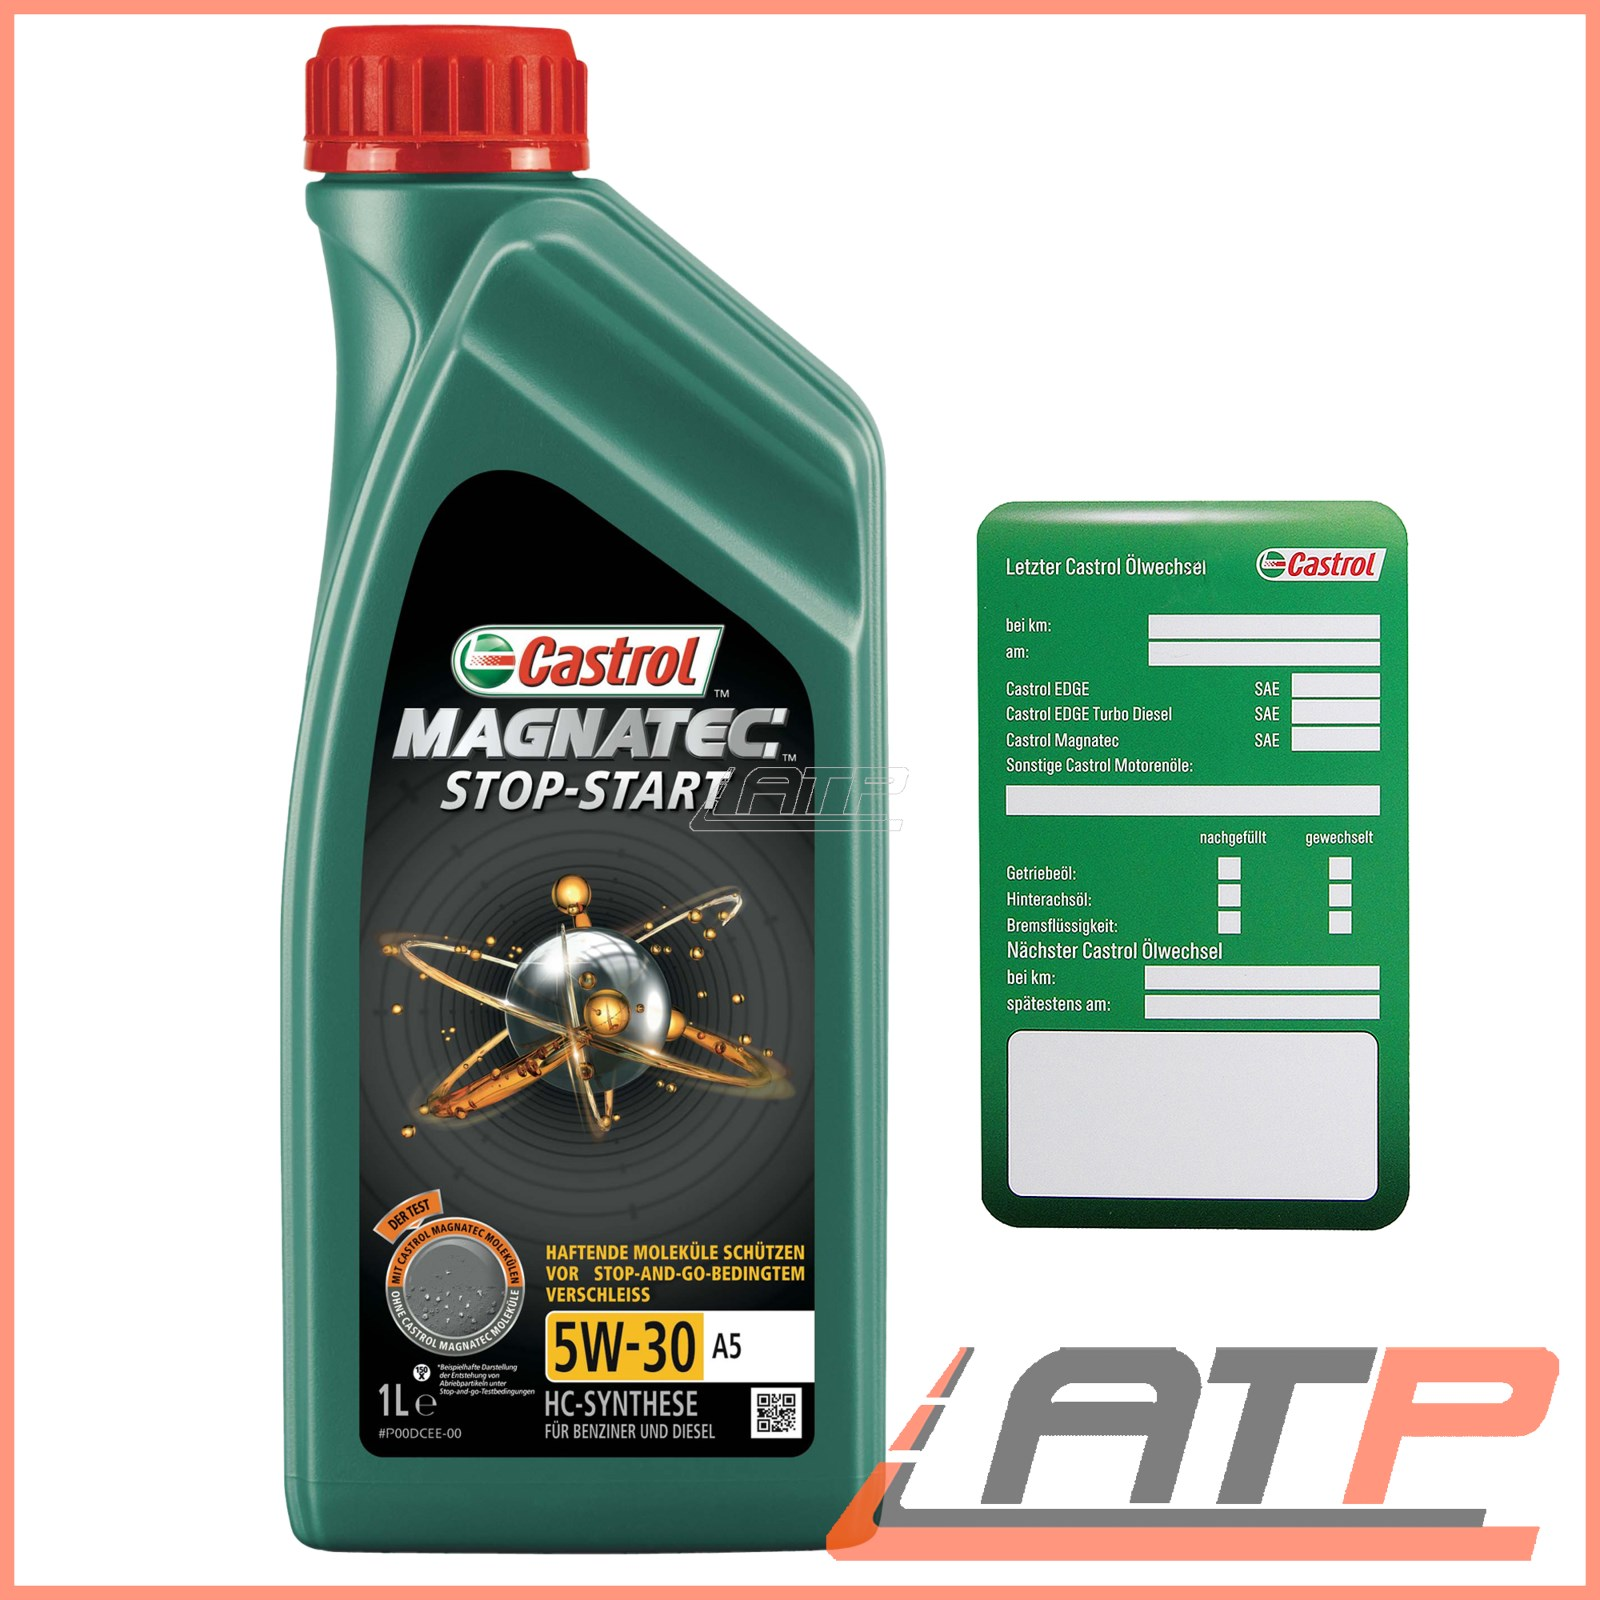 1 l castrol magnatec stop start 5w 30 a5 car engine oil. Black Bedroom Furniture Sets. Home Design Ideas